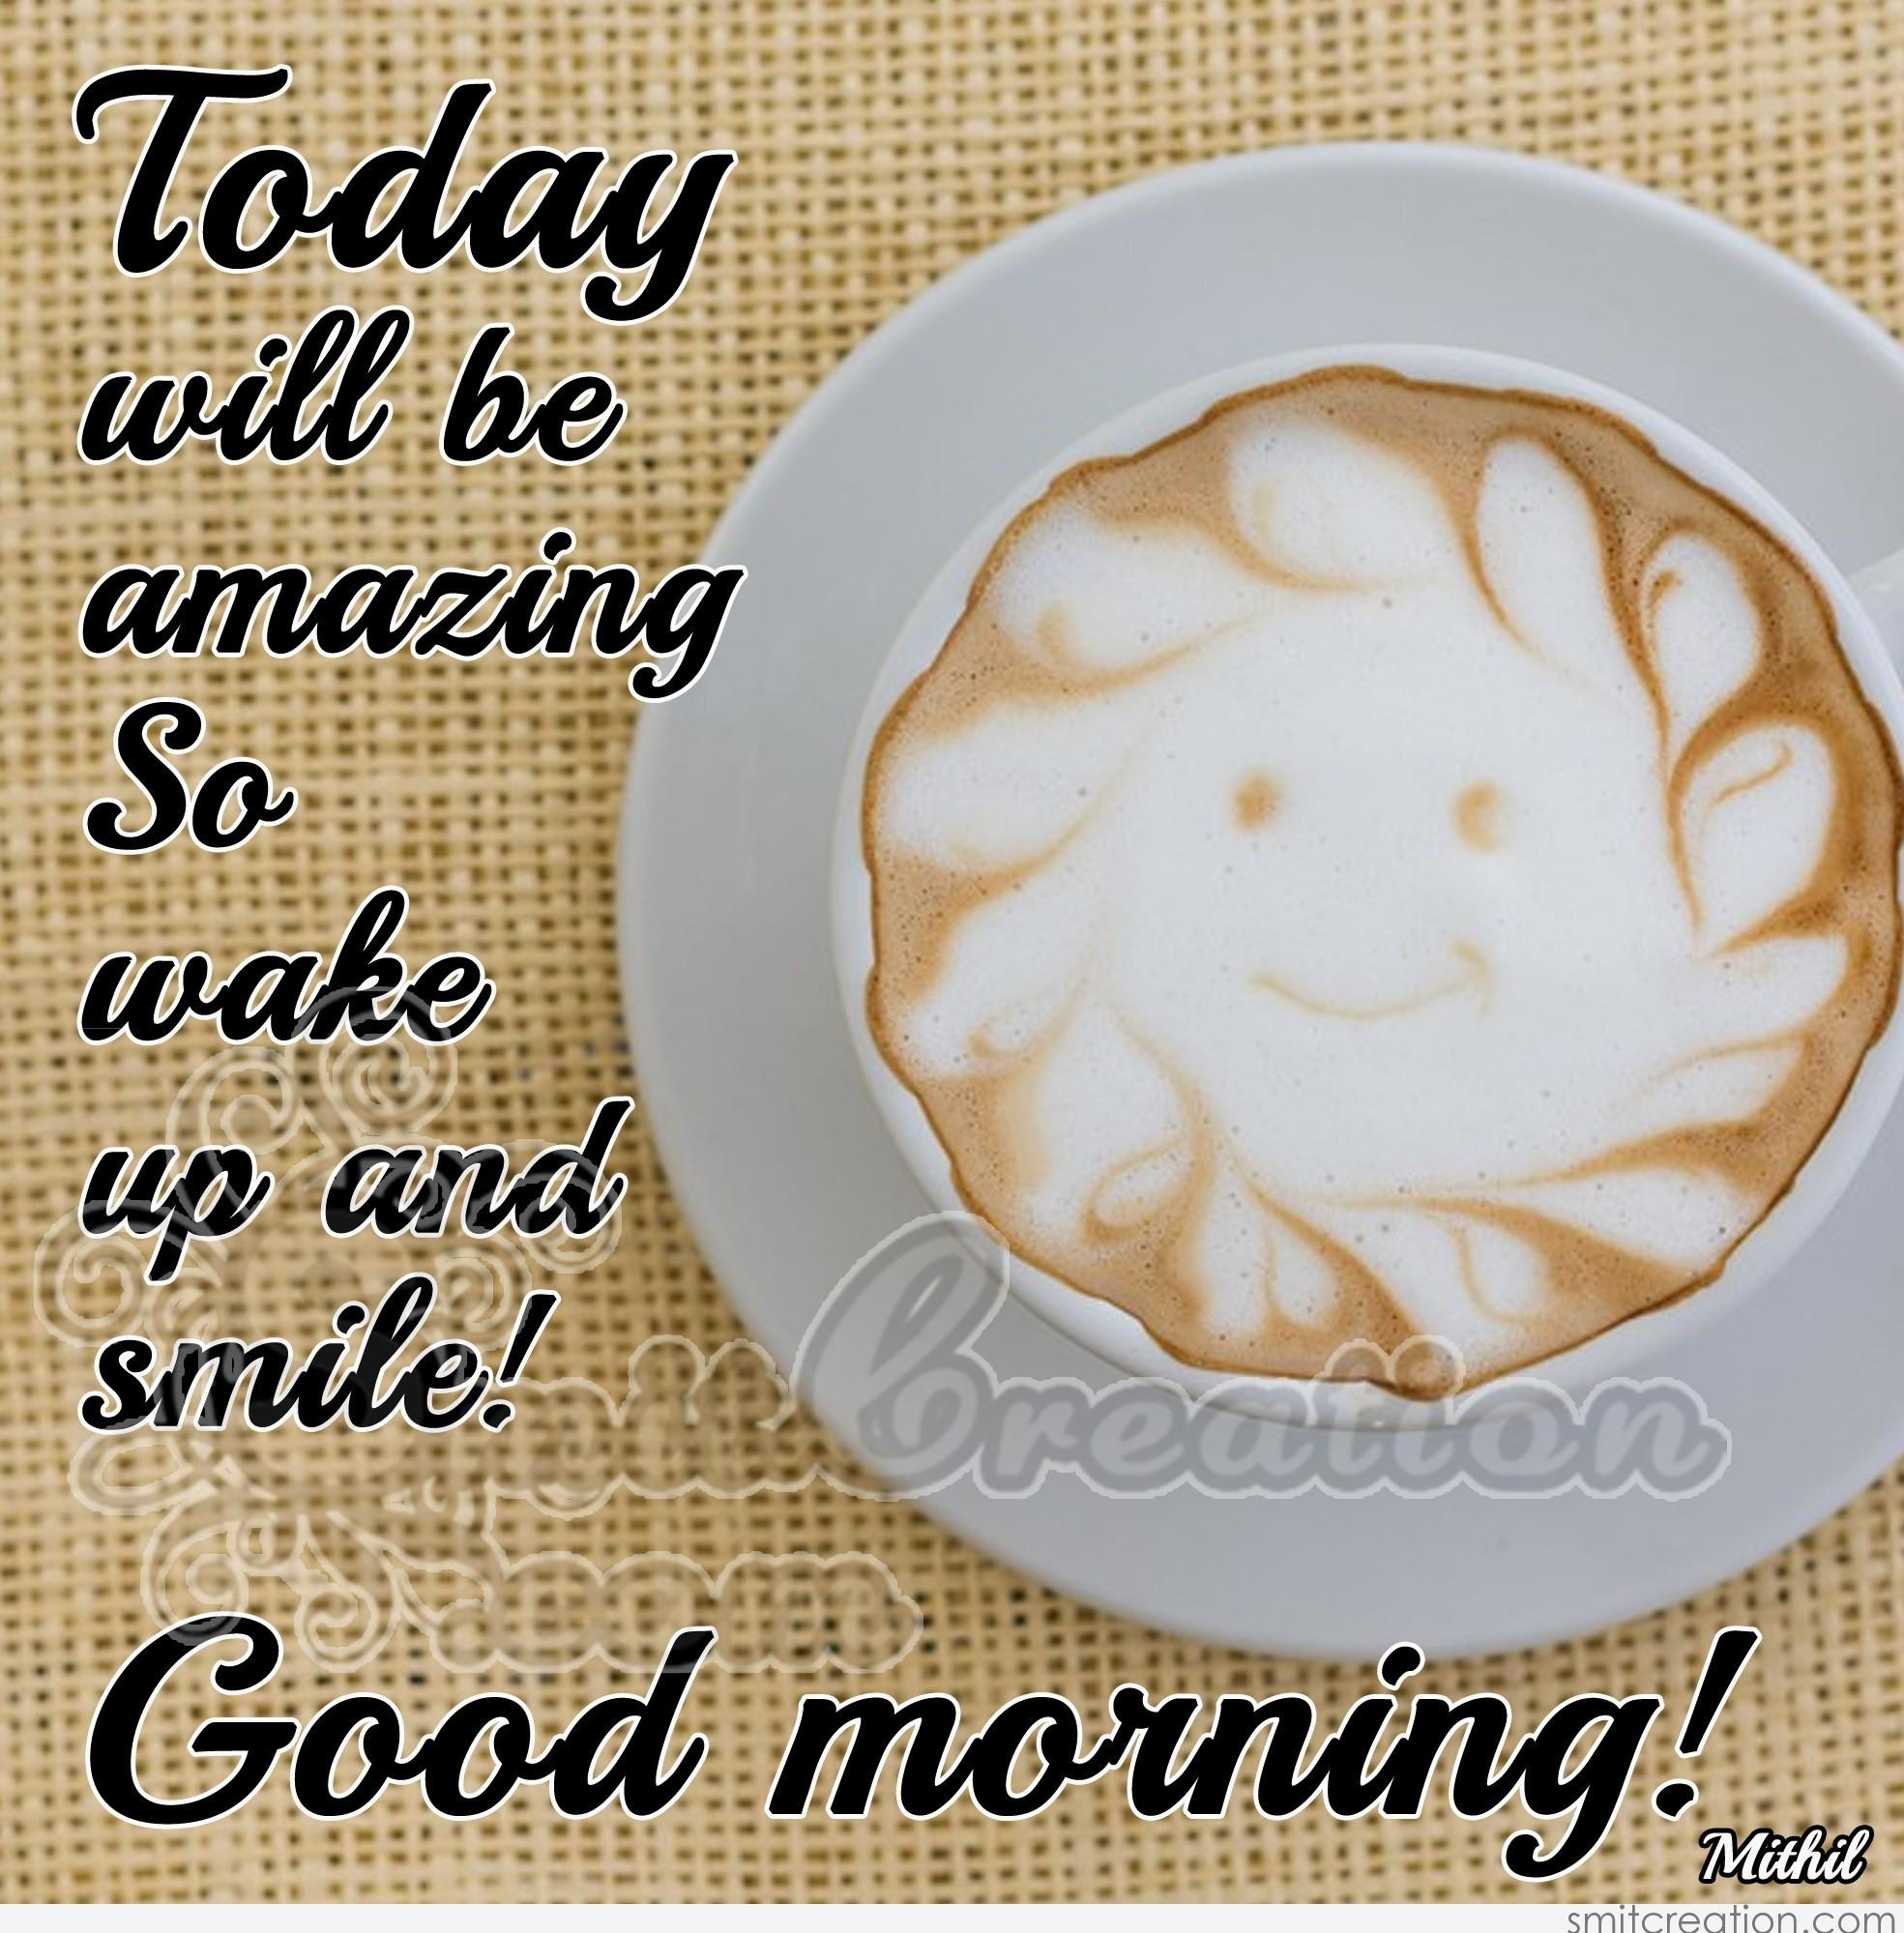 Good Morning Today Will Be Amazing So Wake Up And Smile